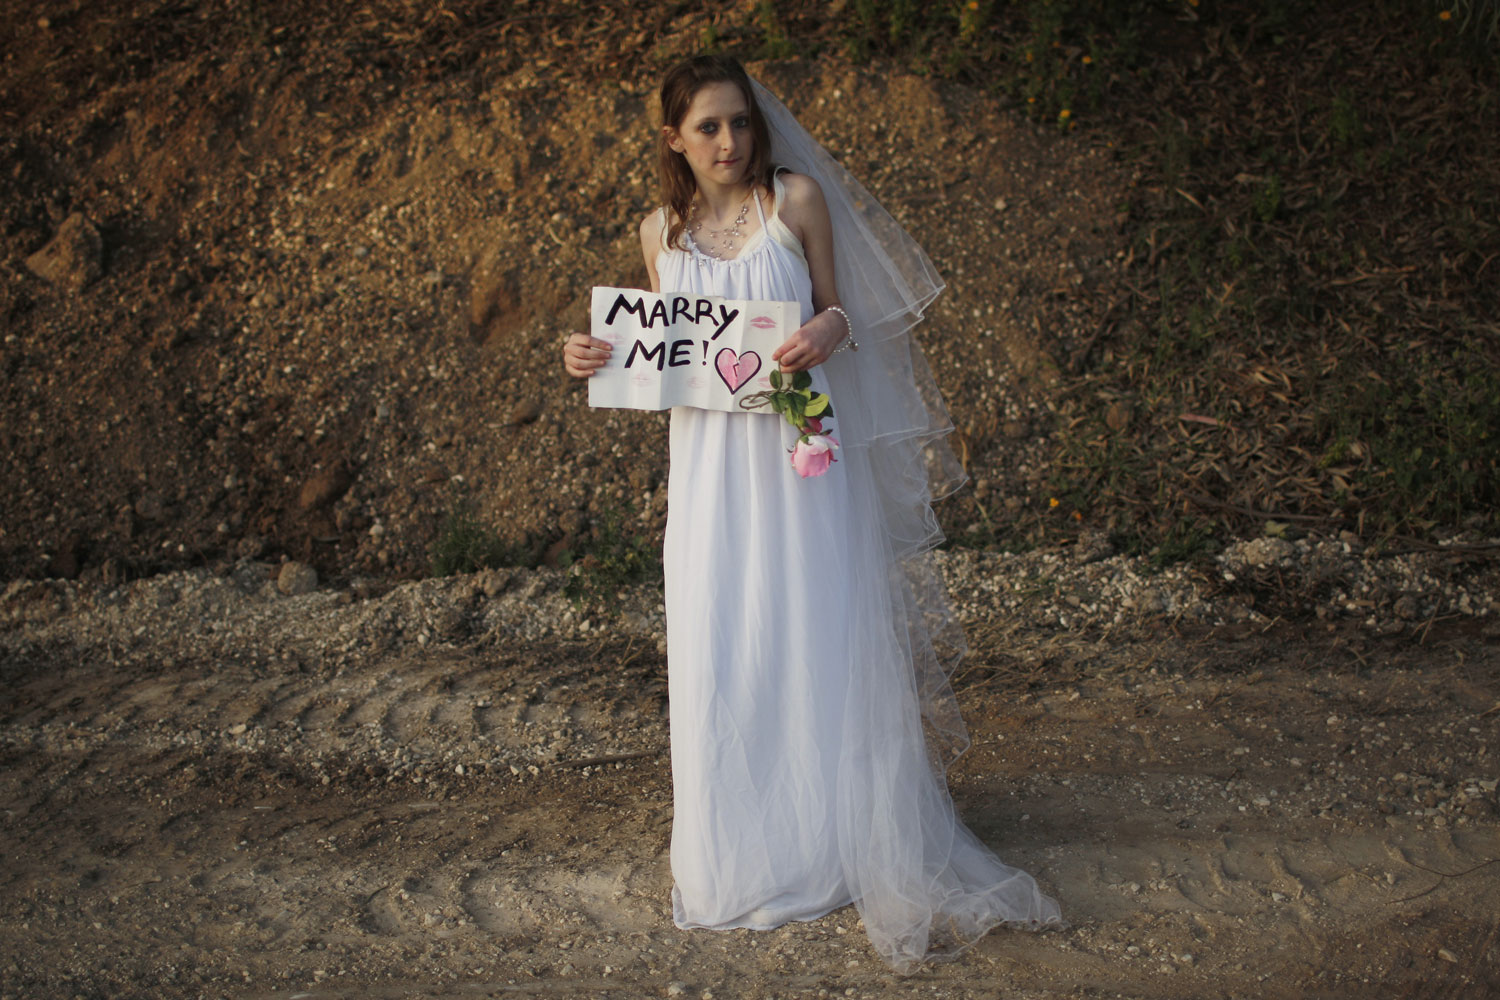 April 14, 2011. Hallel Goldamna, 13, wears a wedding dress as she holds a sign for Canadian singer Justin Bieber ahead of his concert in Tel Aviv, Israel.